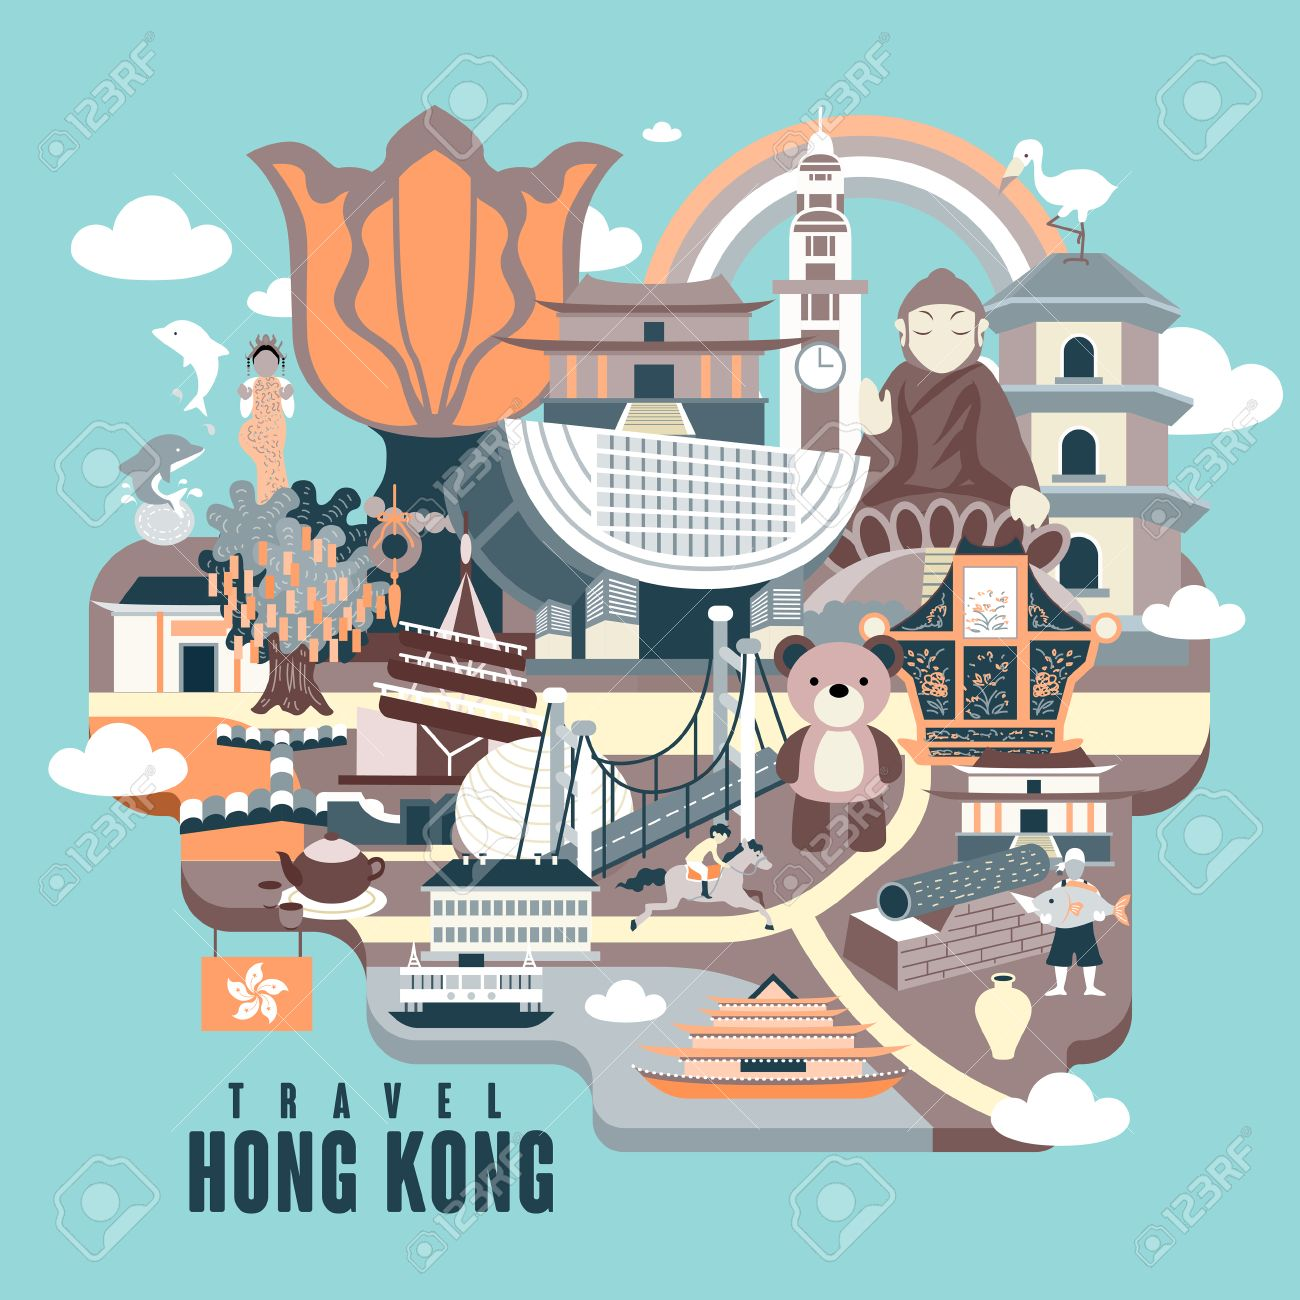 Poster design hong kong - Hong Kong Travel Poster Design With Attractions In Flat Style Stock Vector 48057898